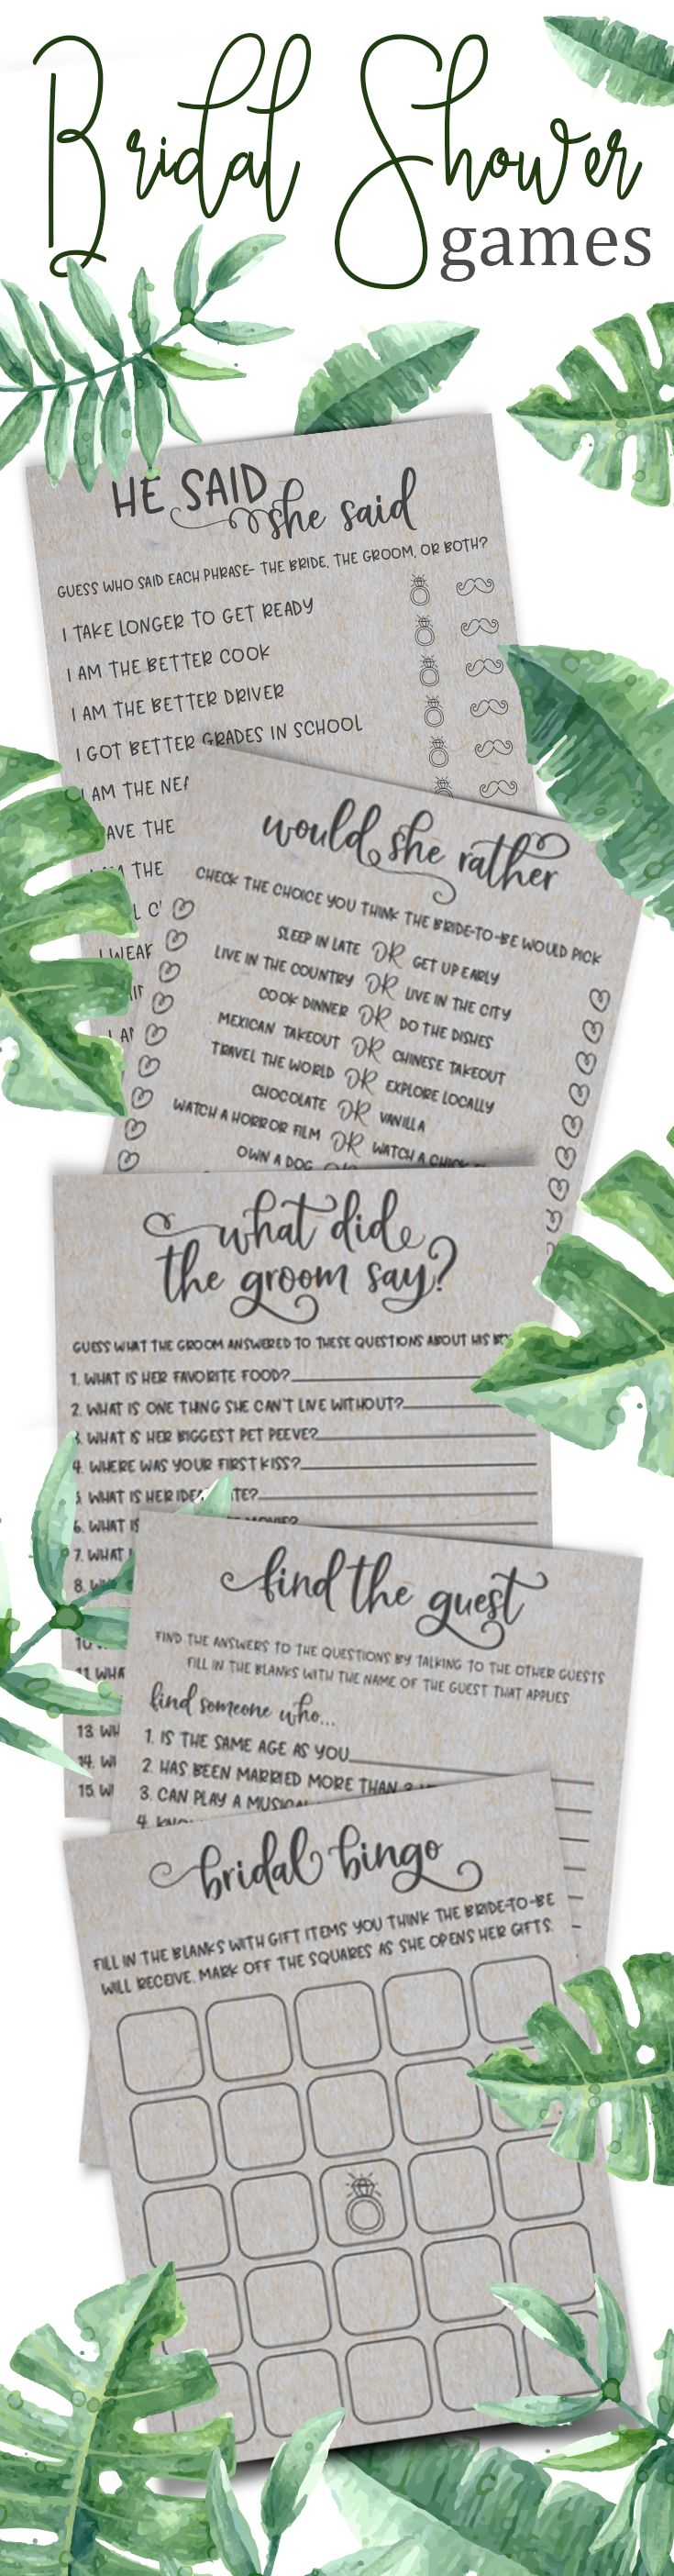 free printable bridal shower games how well do you know the bride%0A bridal shower ideas  bridal shower games  bridal shower decorations  bridal  shower  bridal